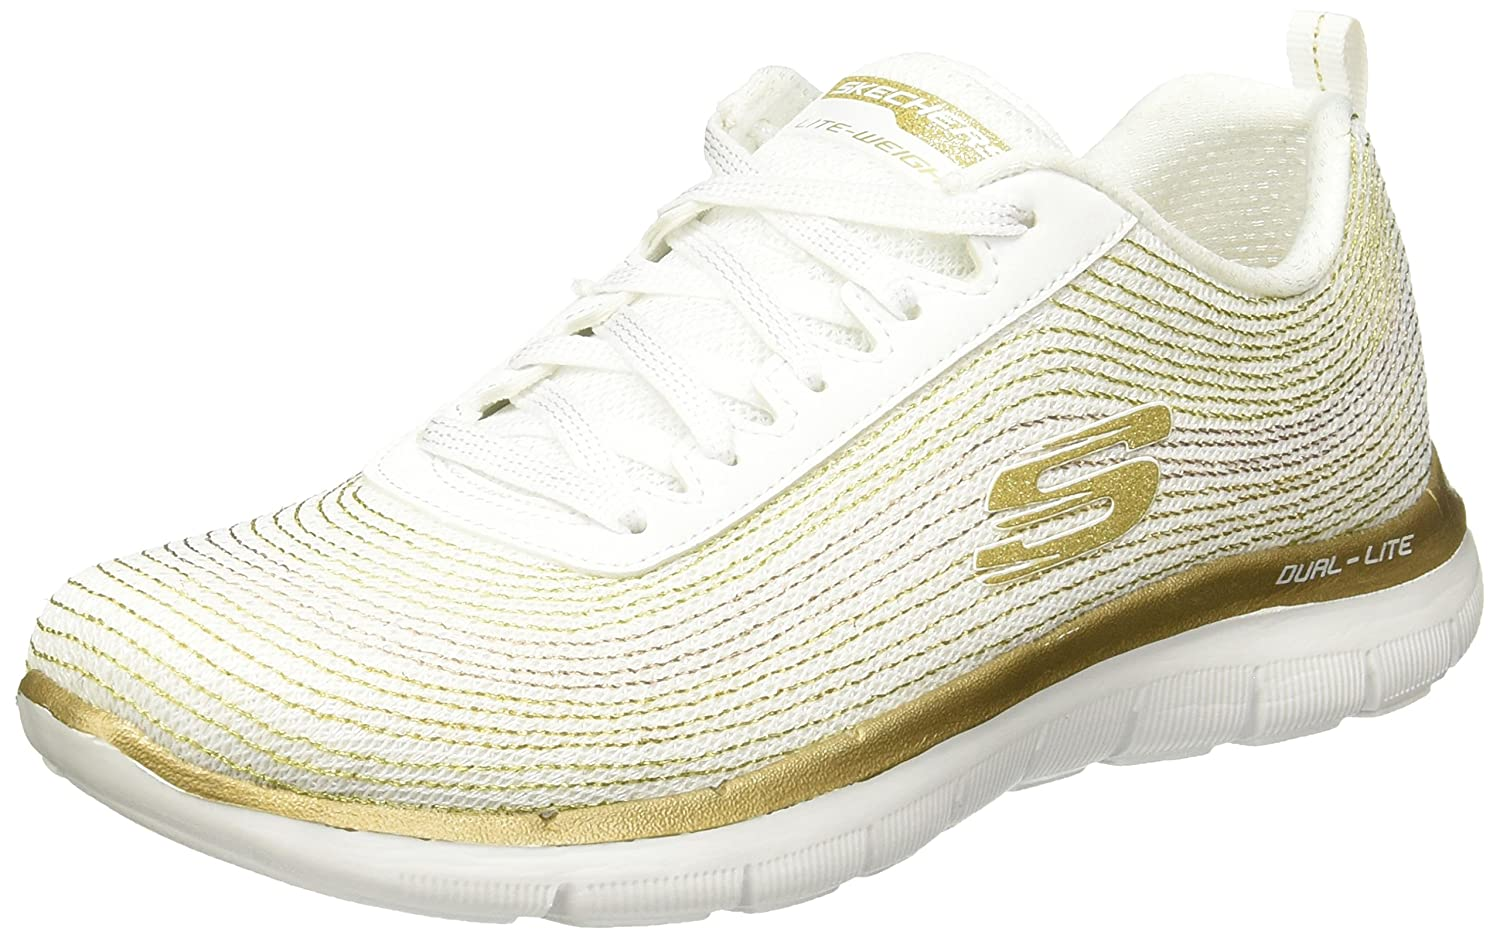 Skechers Women's Low Shoes Sneakers 12764 Gray B01FXHVVCA 8.5 B(M) US|White/Gold